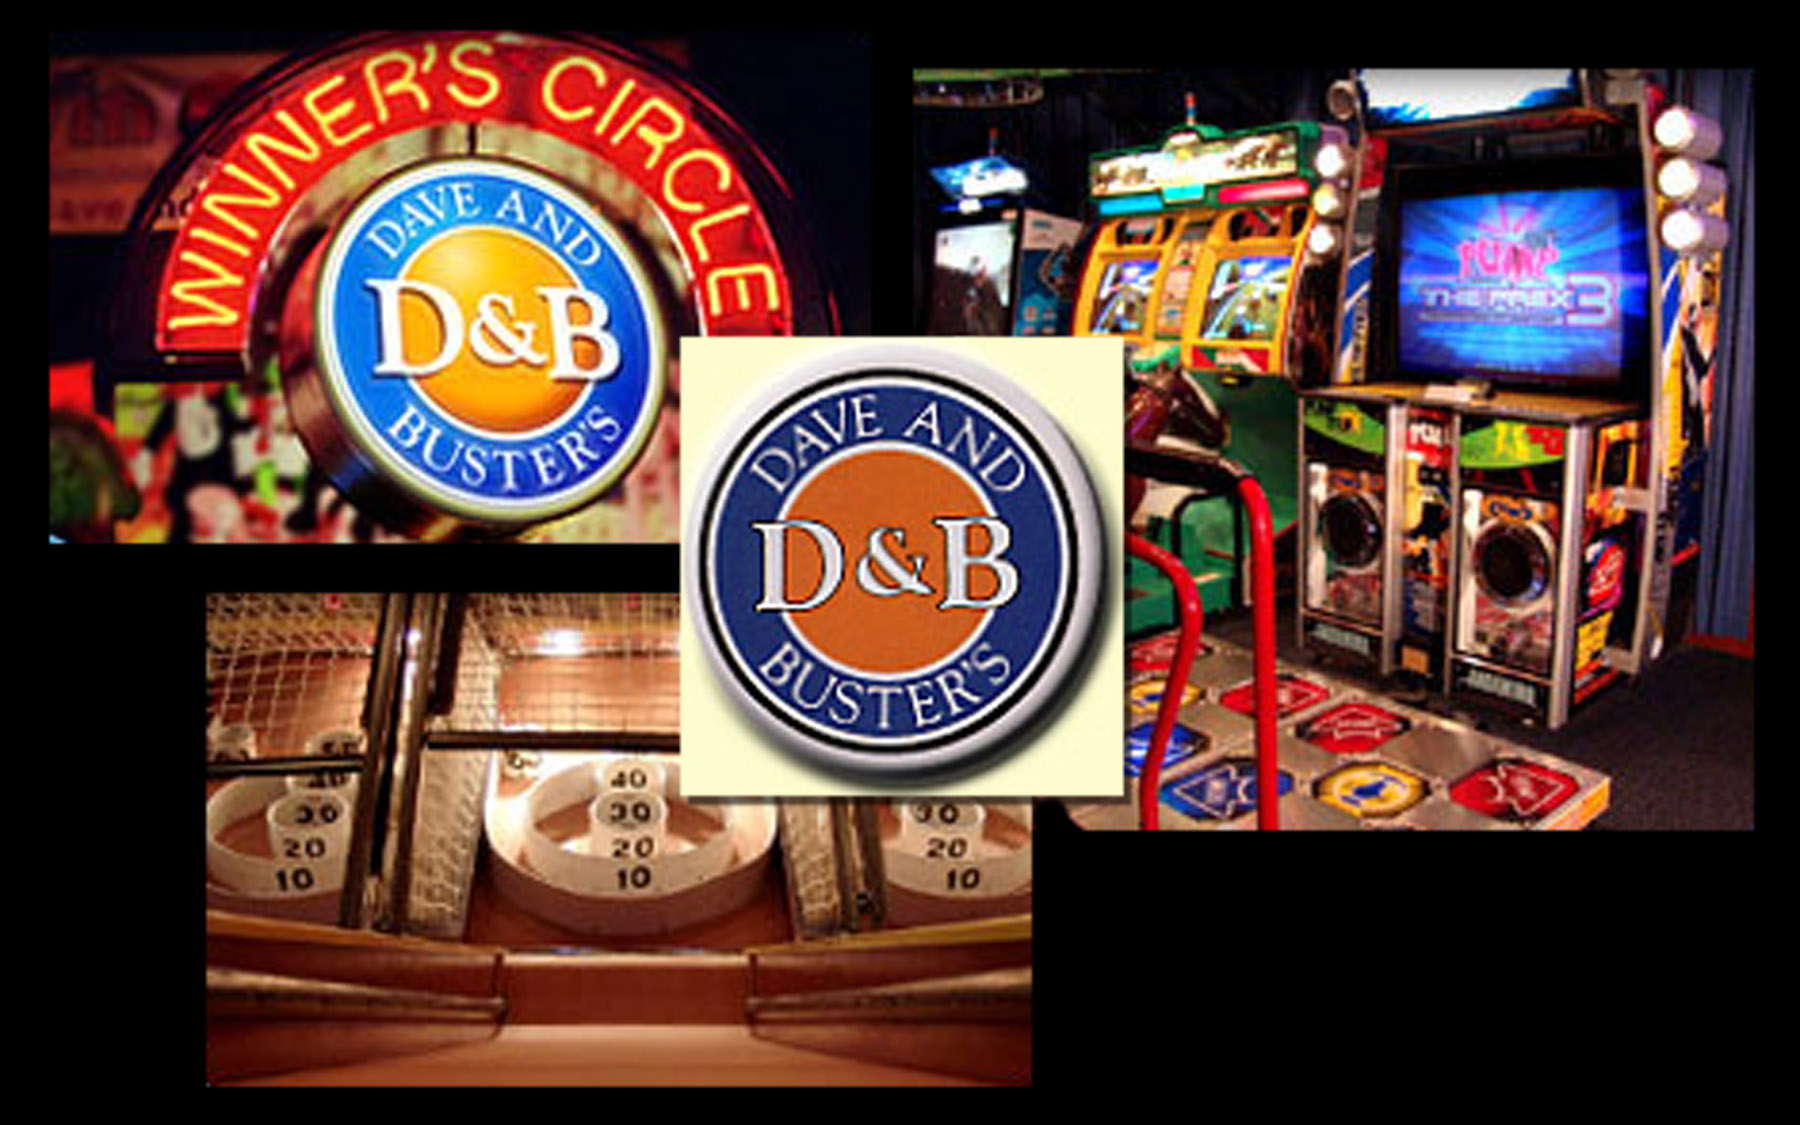 Dave & Buster's in Oakville, ON